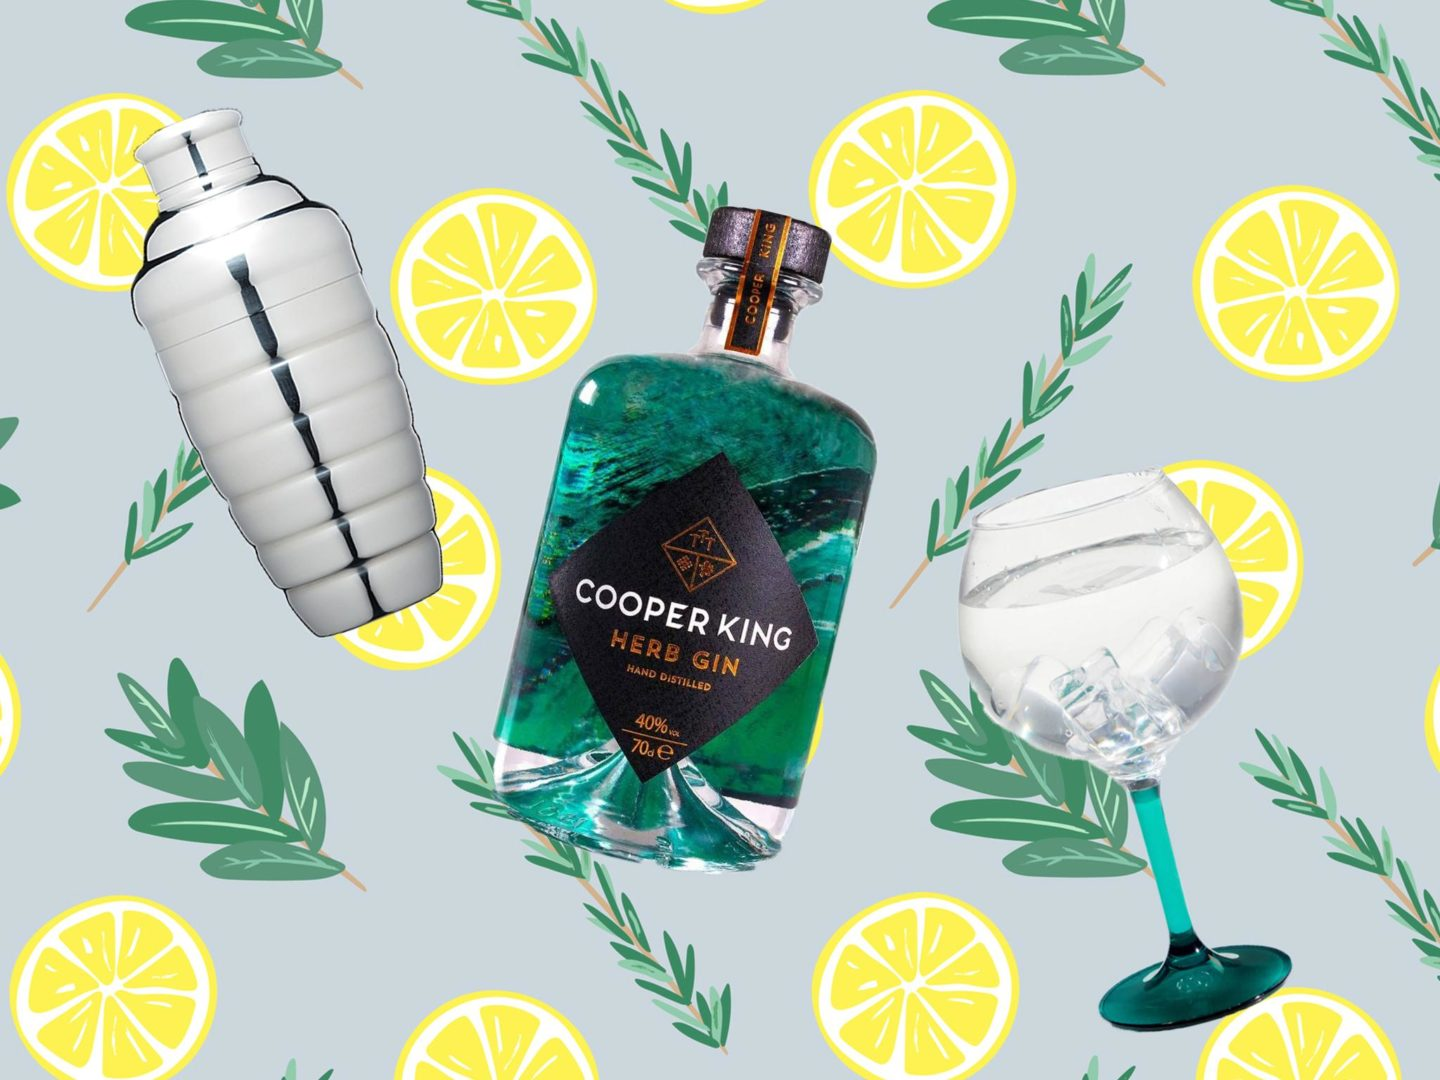 Cooper King gin sustainable